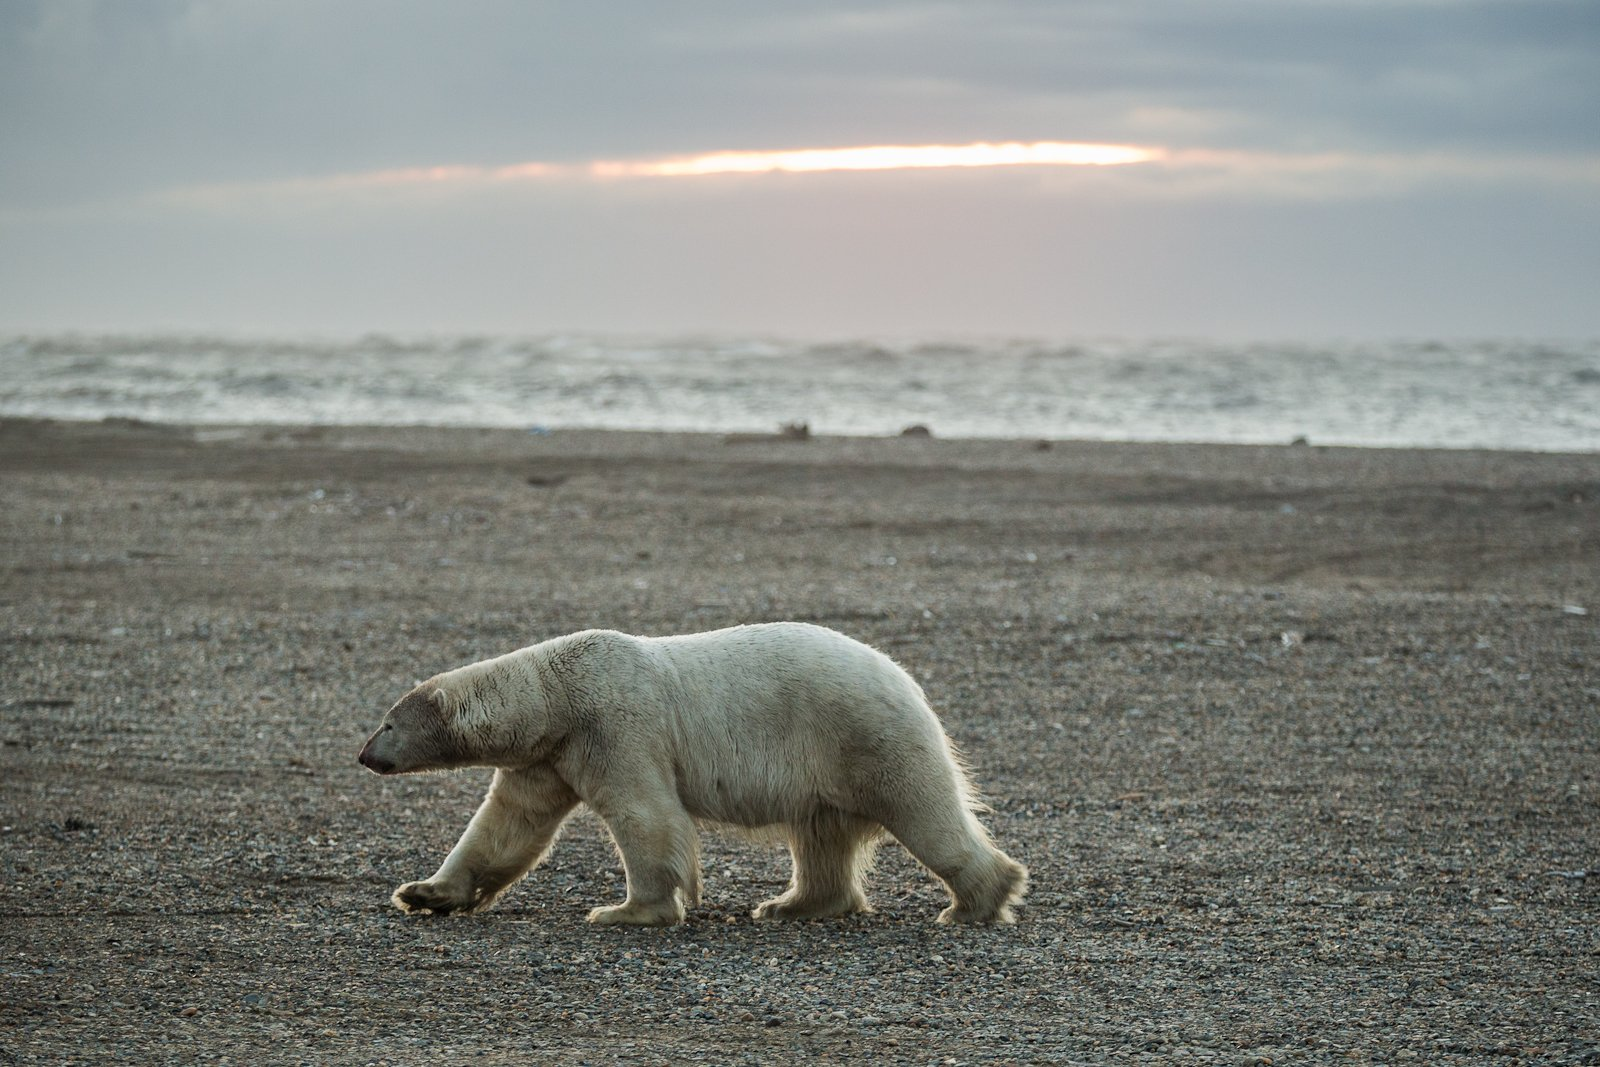 How do polar bears find prey? The answer is blowing in the wind